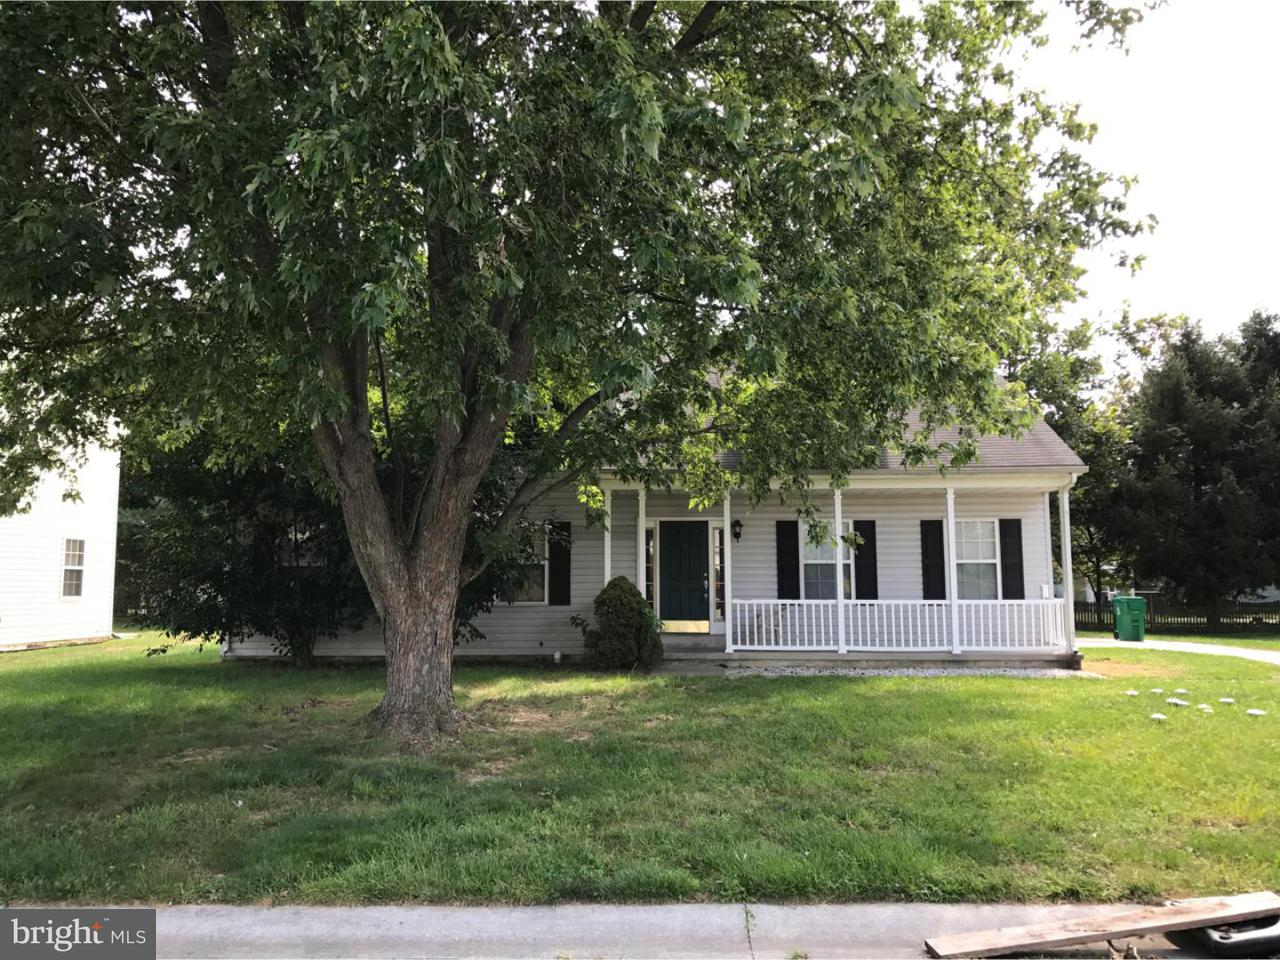 Single Family Home for Rent at 177 TRAYBERN BLVD Camden Wyoming, Delaware 19934 United States